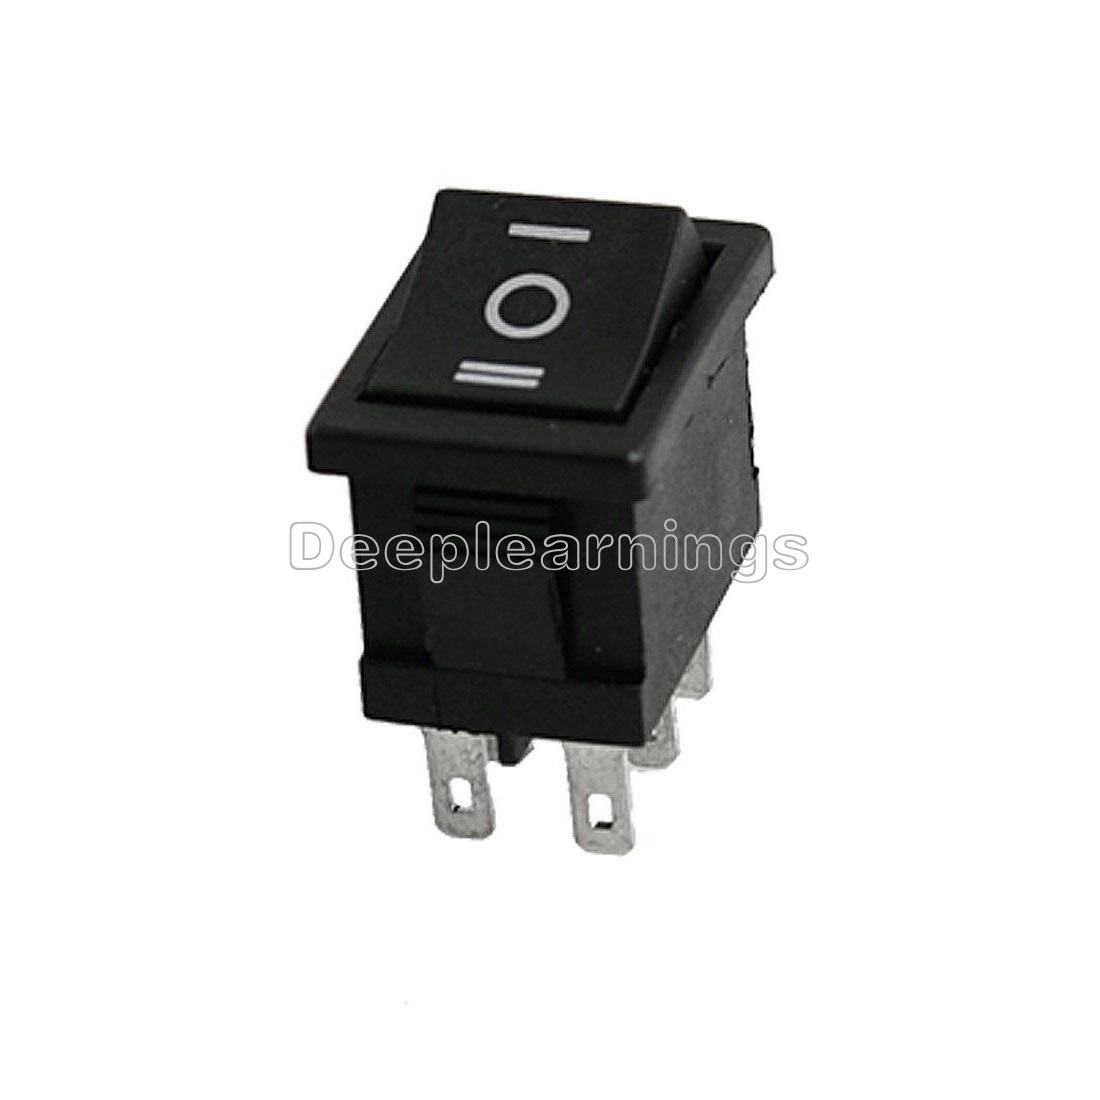 5PCS 6Pin DPDT ON-OFF-ON 3 Position Snap Boat Rocker Switch AC 6A//250V 10A//125V